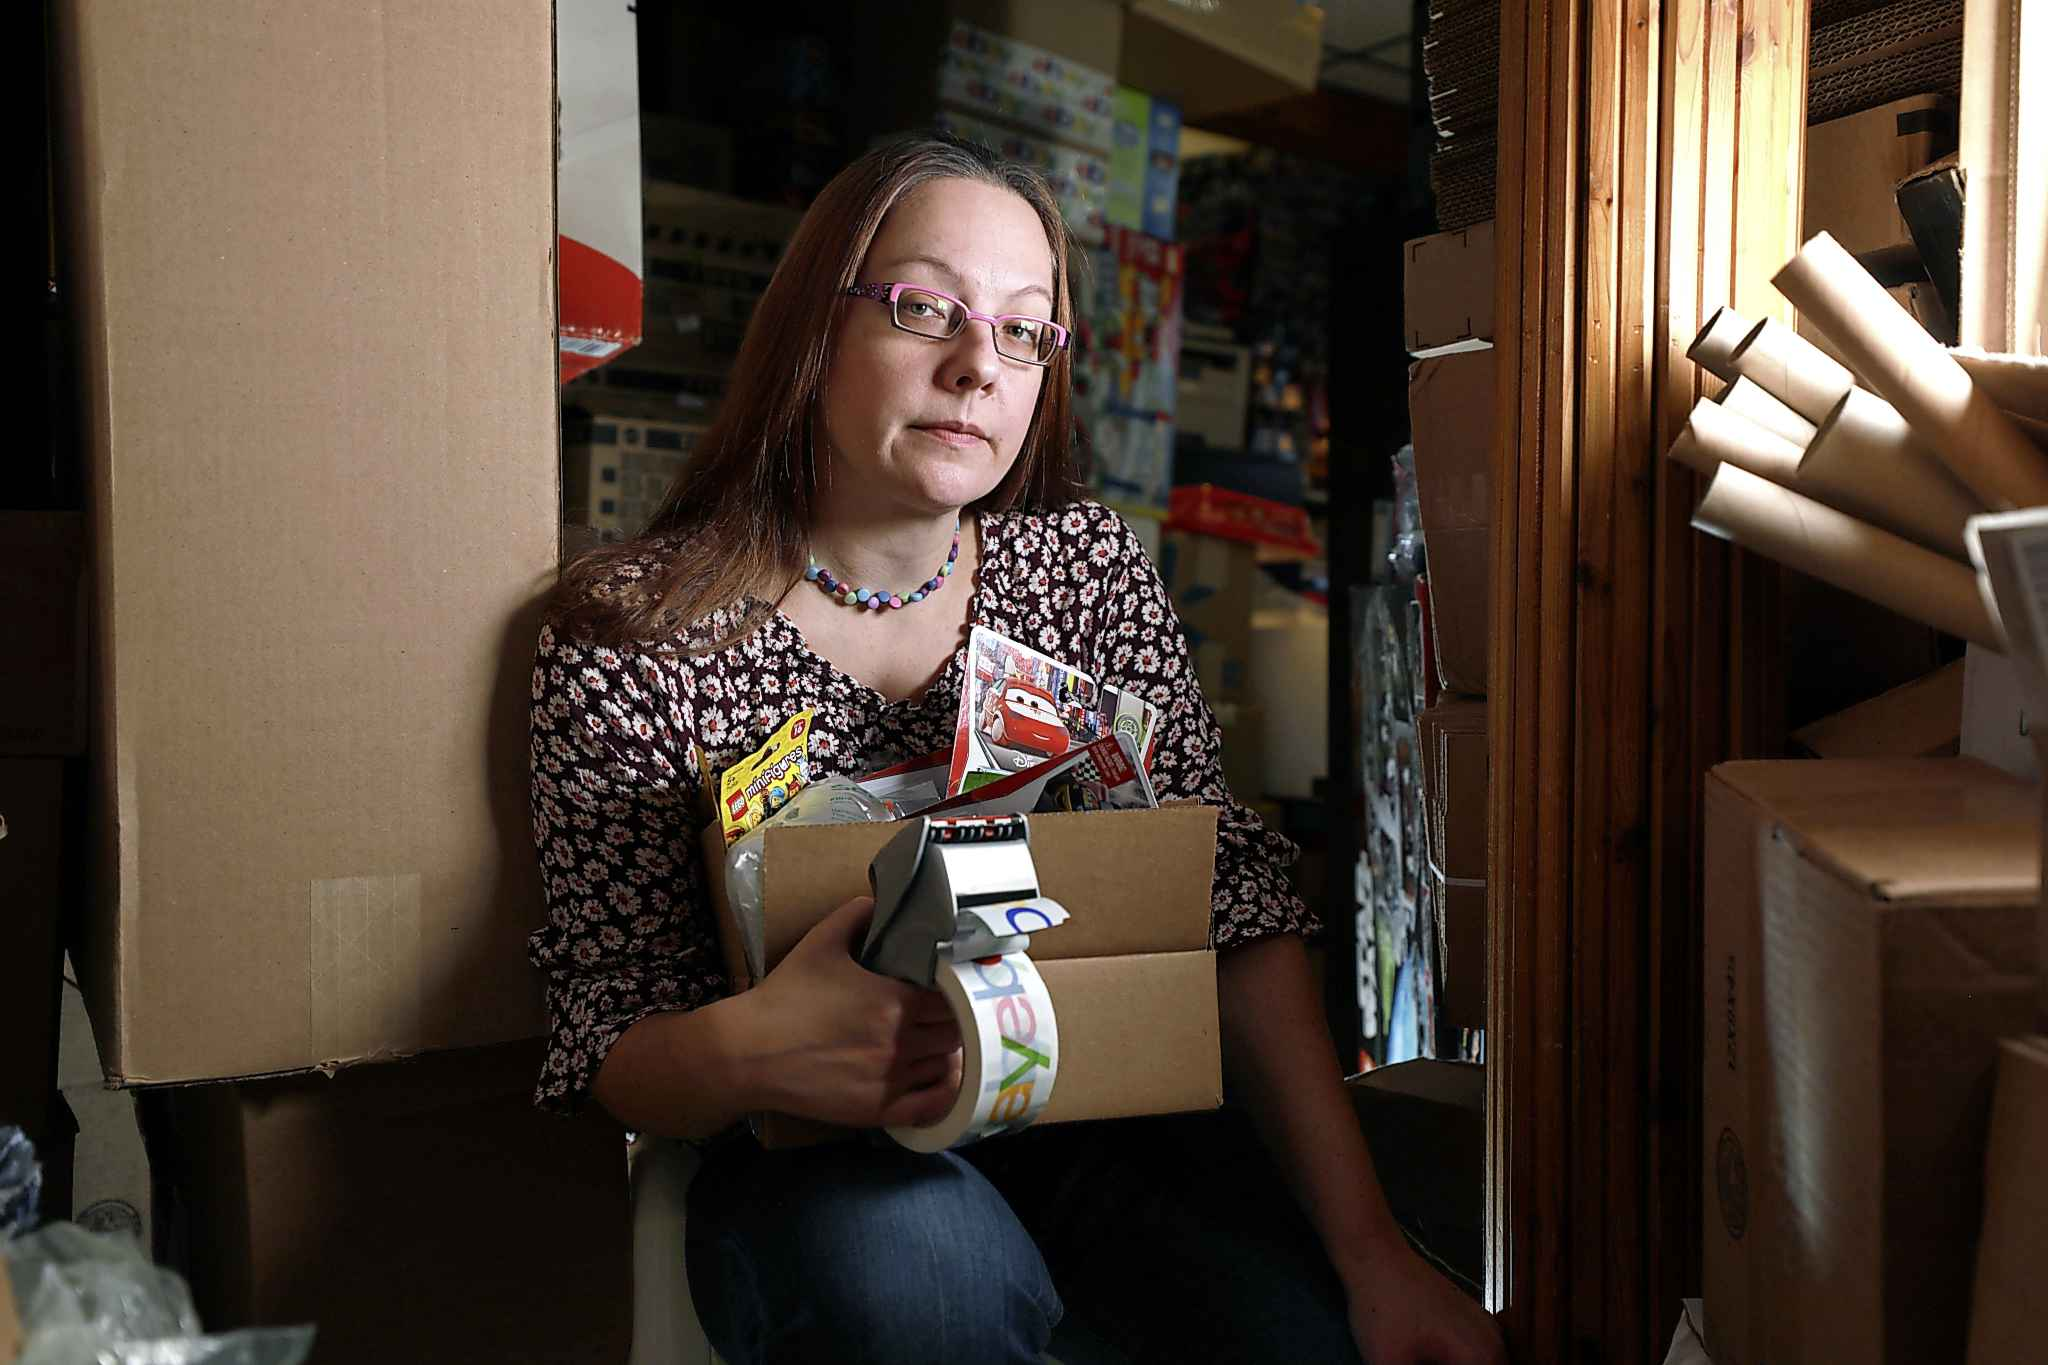 Maureen Lyons runs a toy shipping business out of her home and relies exclusively on Canada Post.